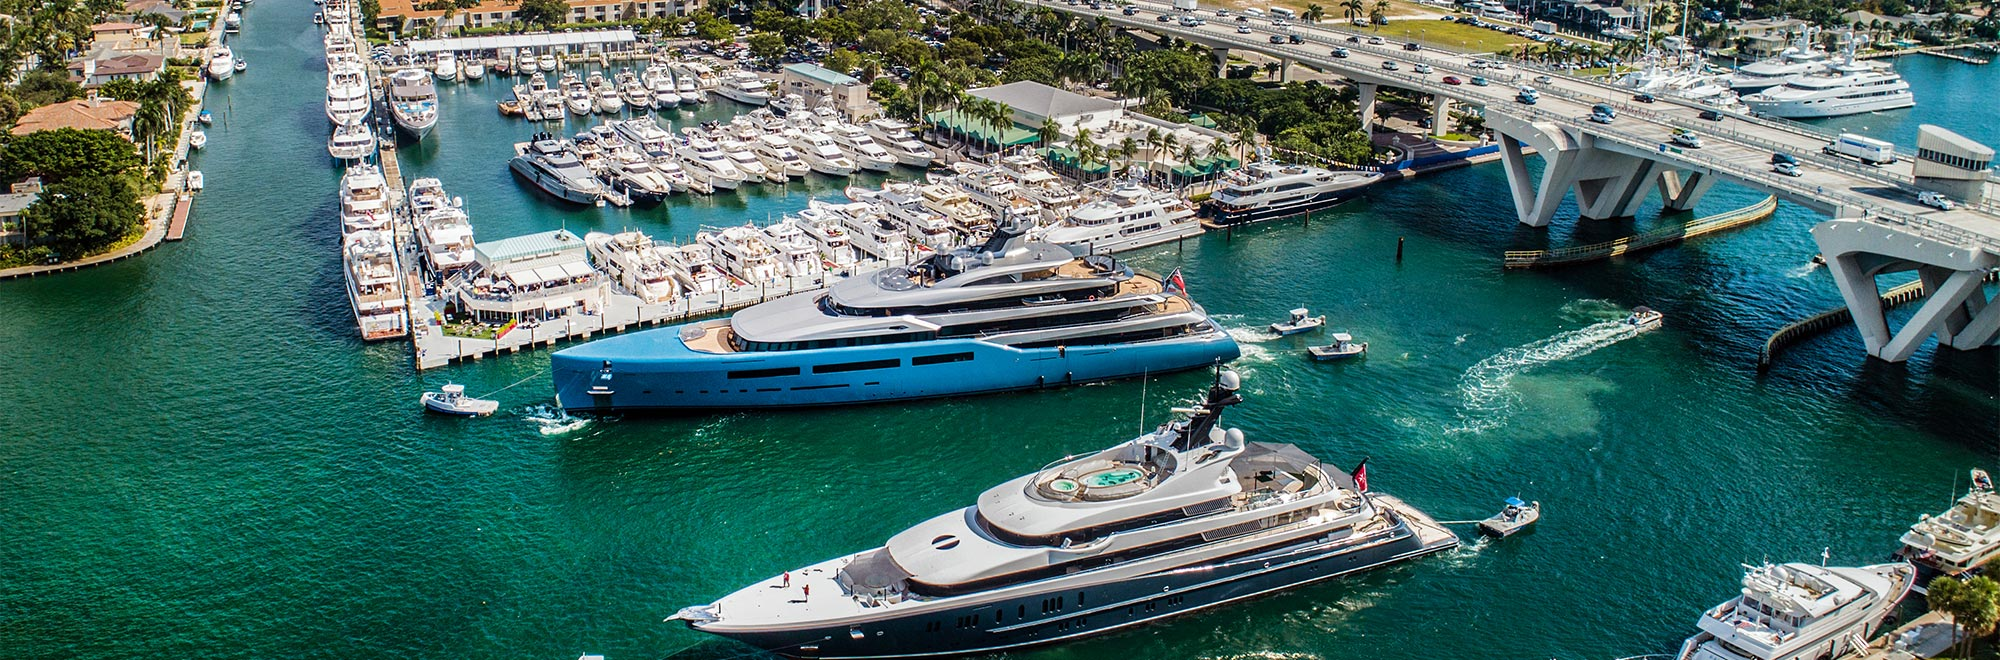 Miami Boat Show Dates 2020.Fort Lauderdale International Boat Show Luxury Yachts